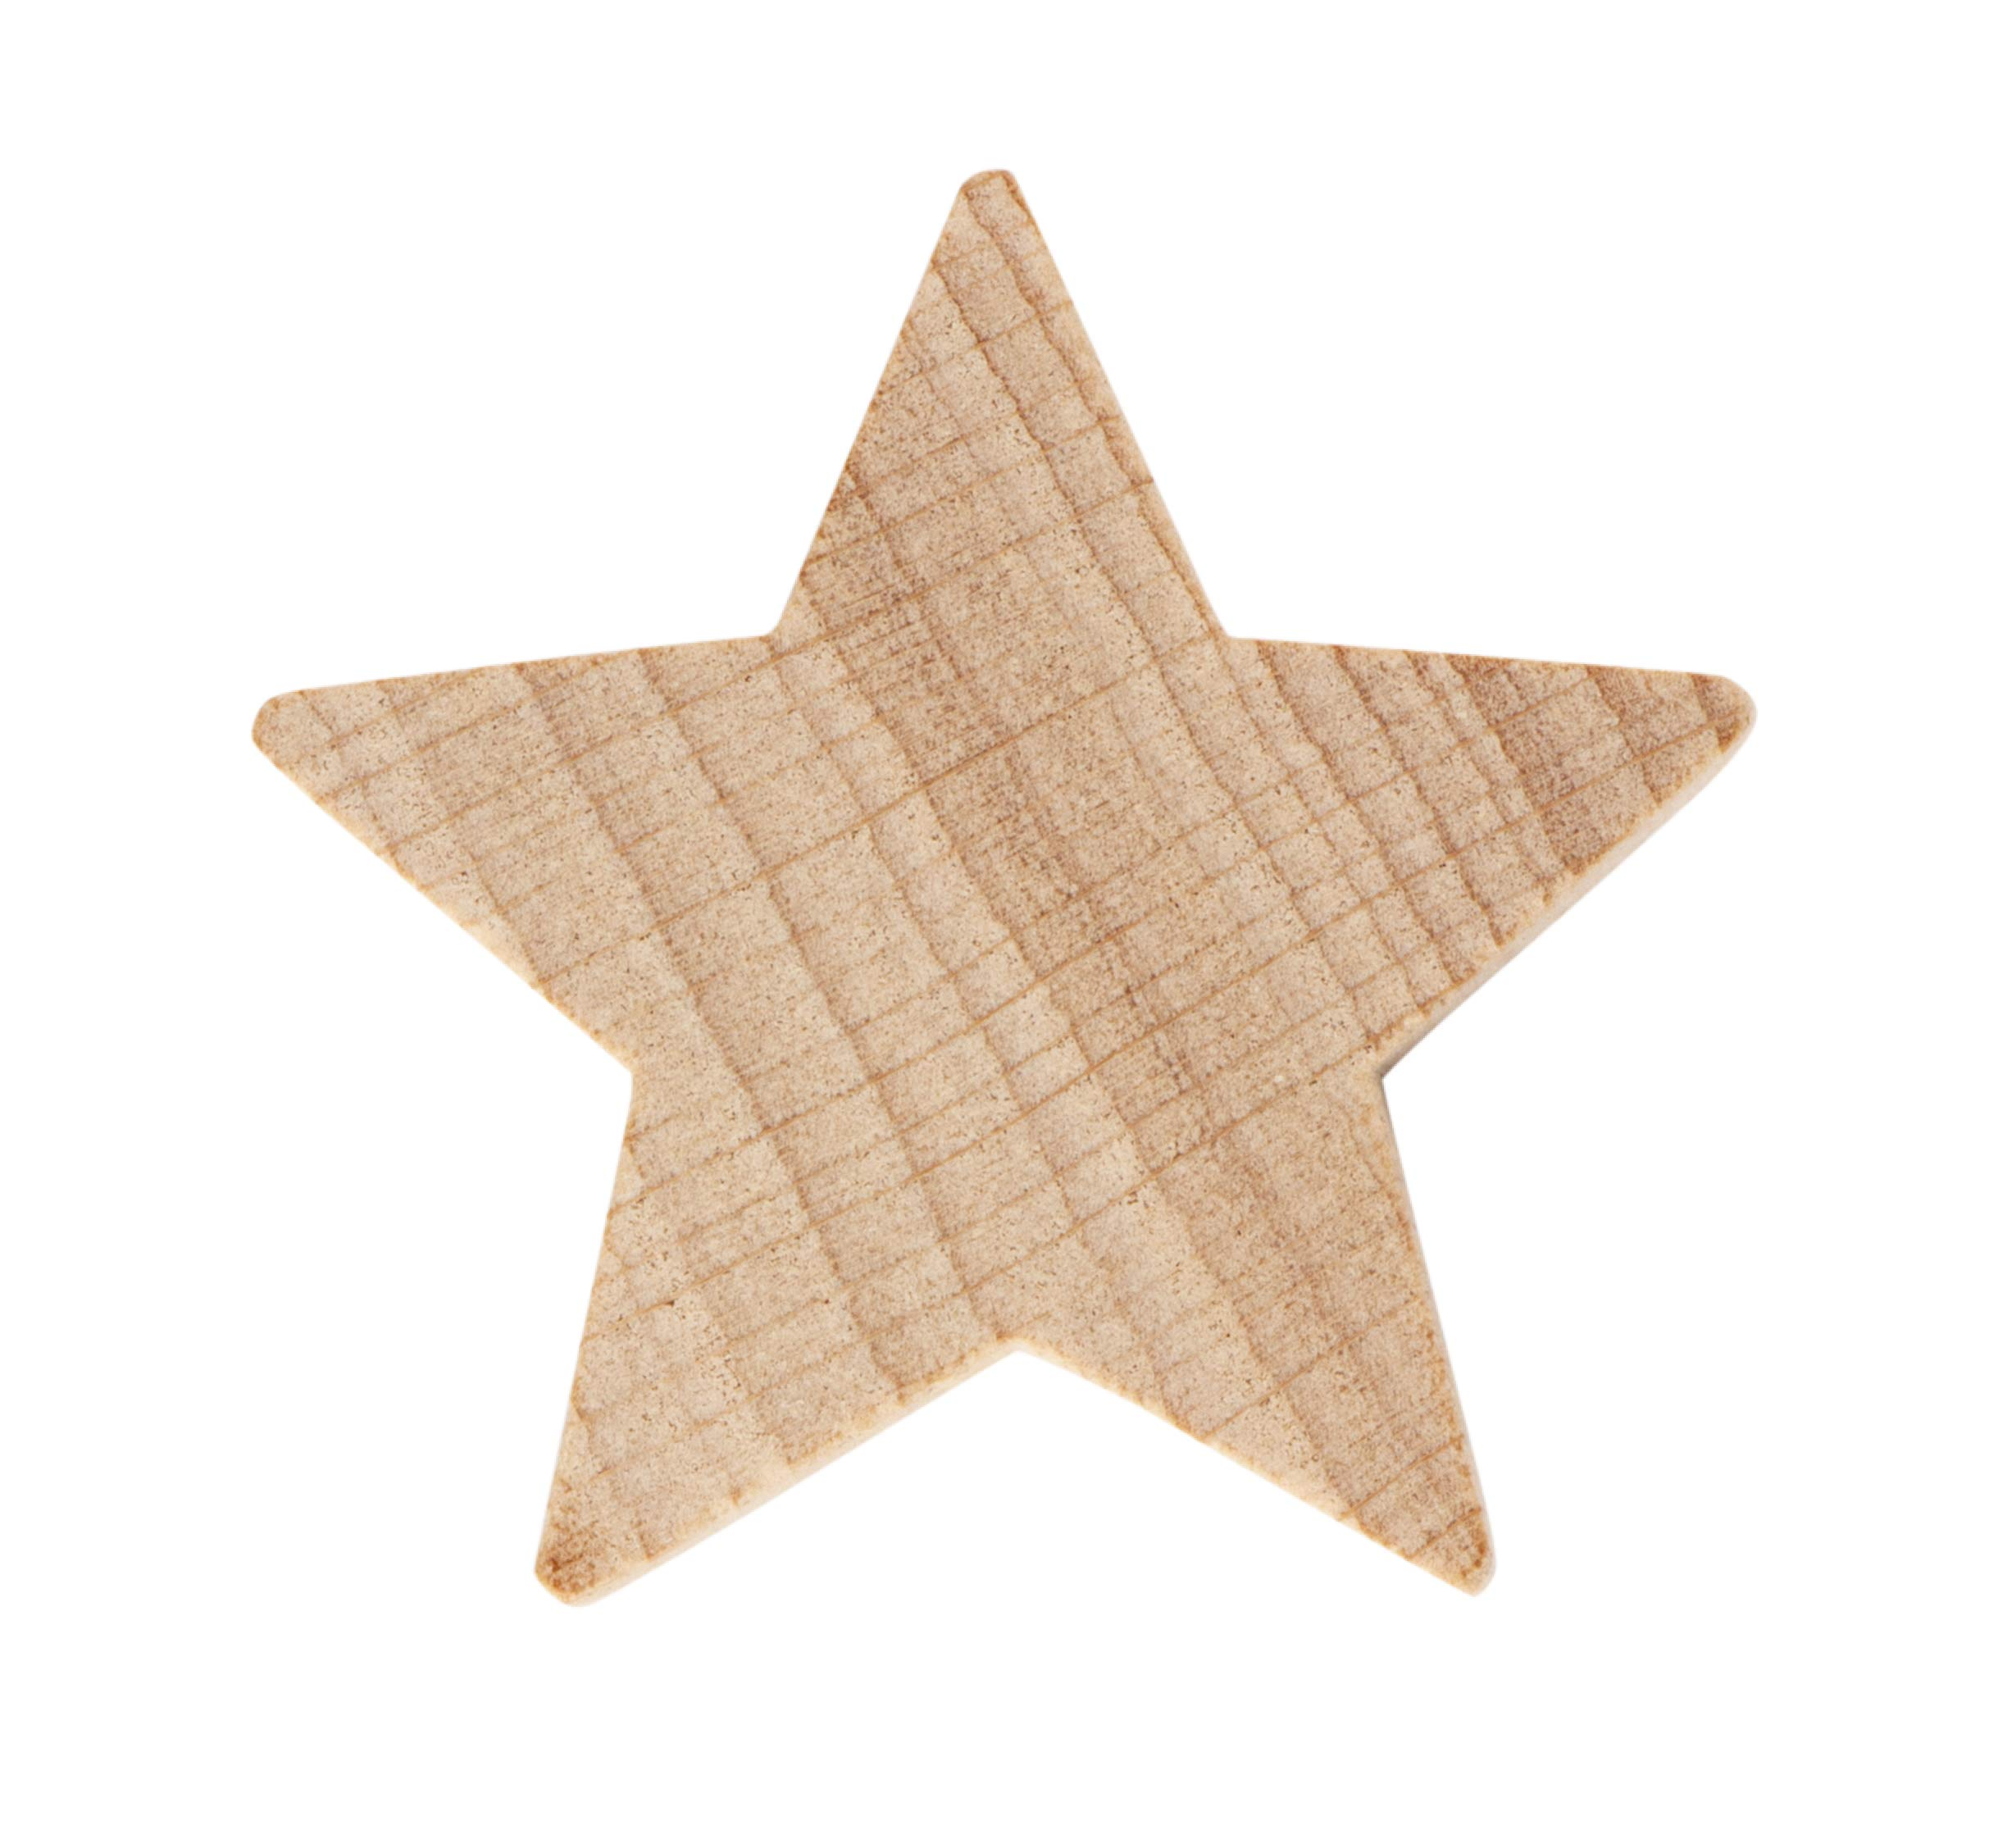 147mm x 240mm x 18mm thick //Wooden blank craft Cloud shape with 3 stars in MDF